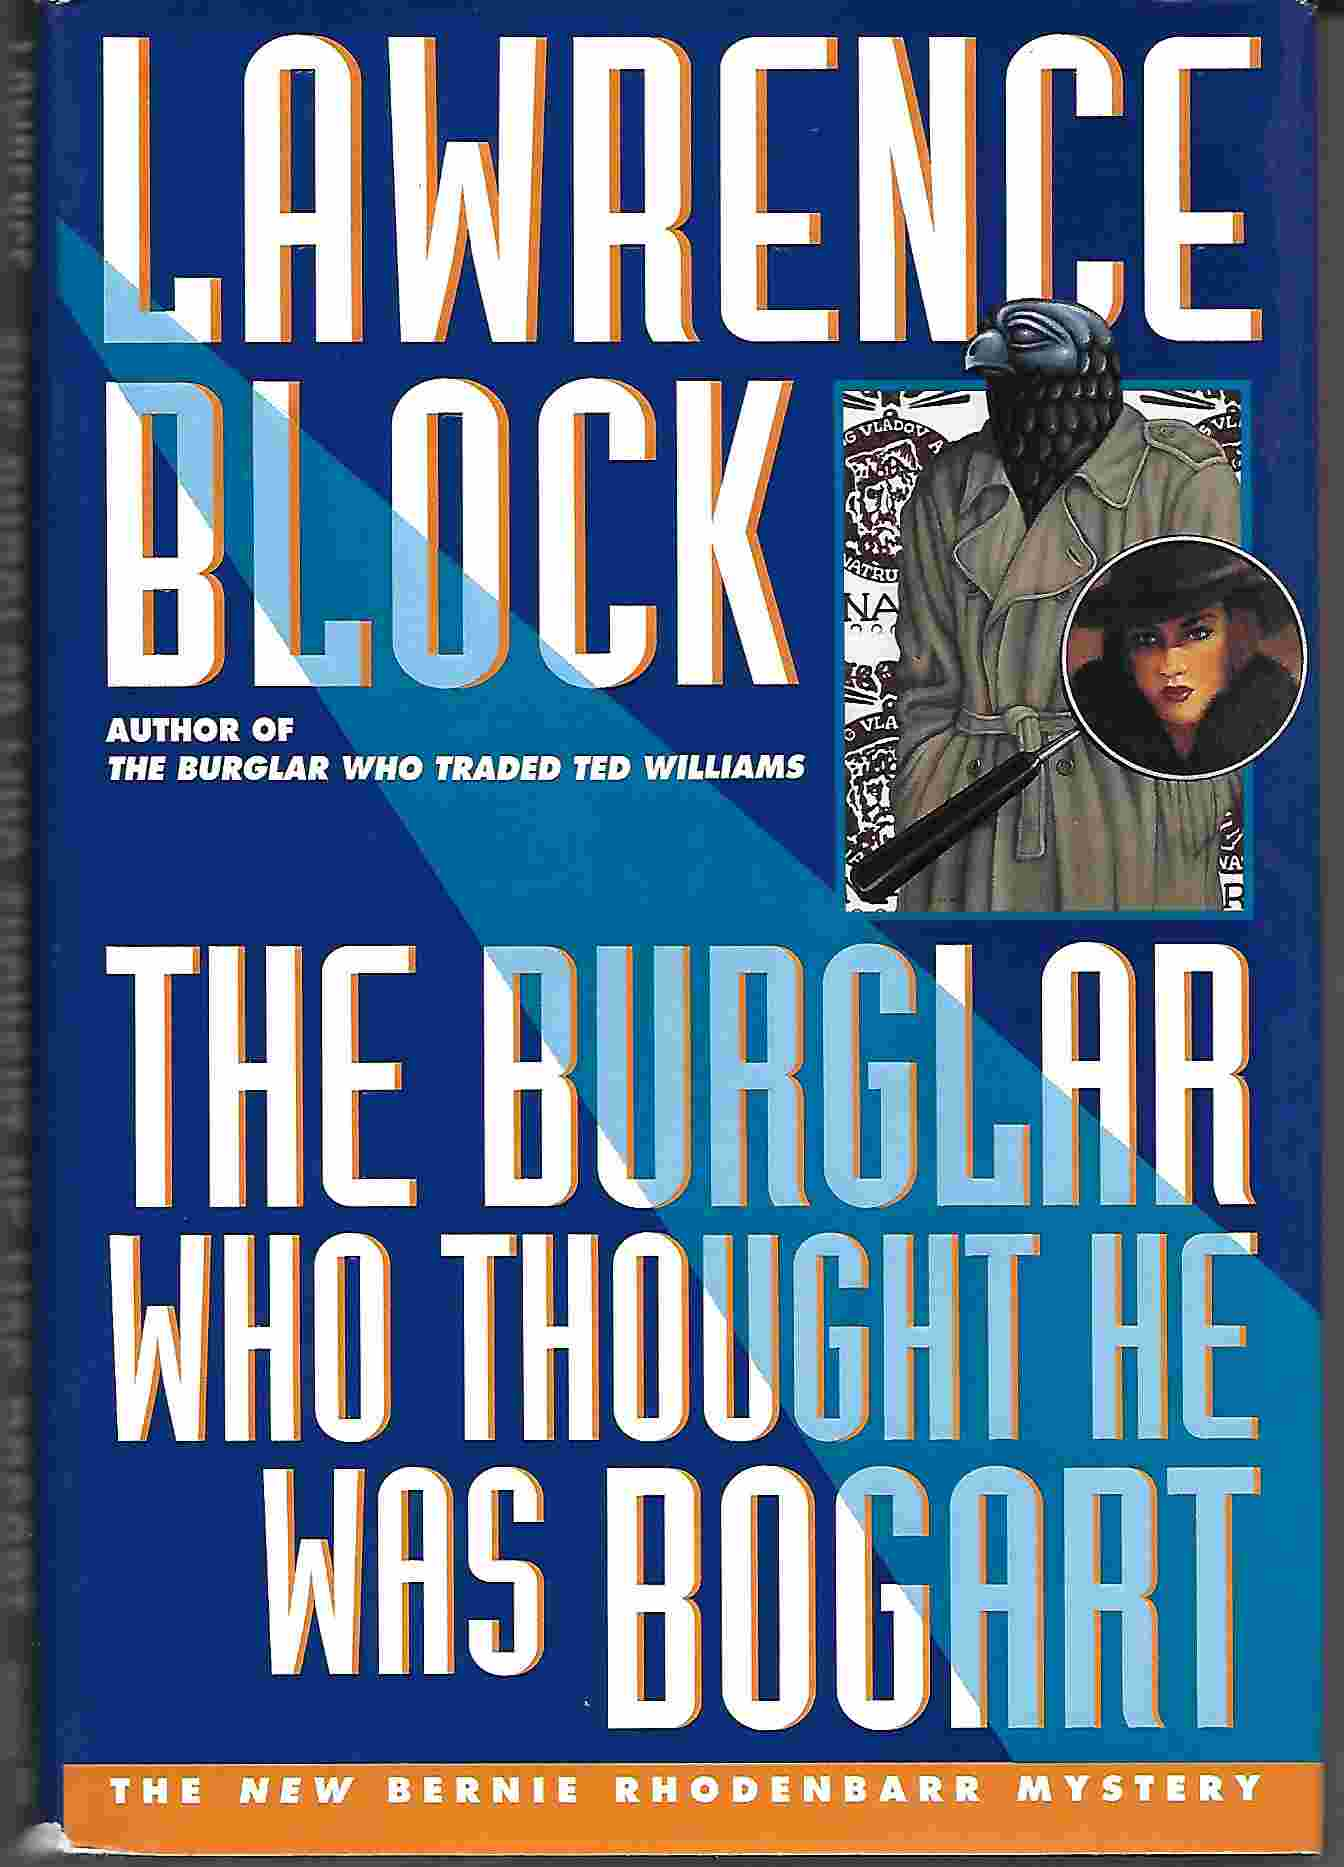 Image for THE BURGLAR WHO THOUGHT HE WAS BOGART